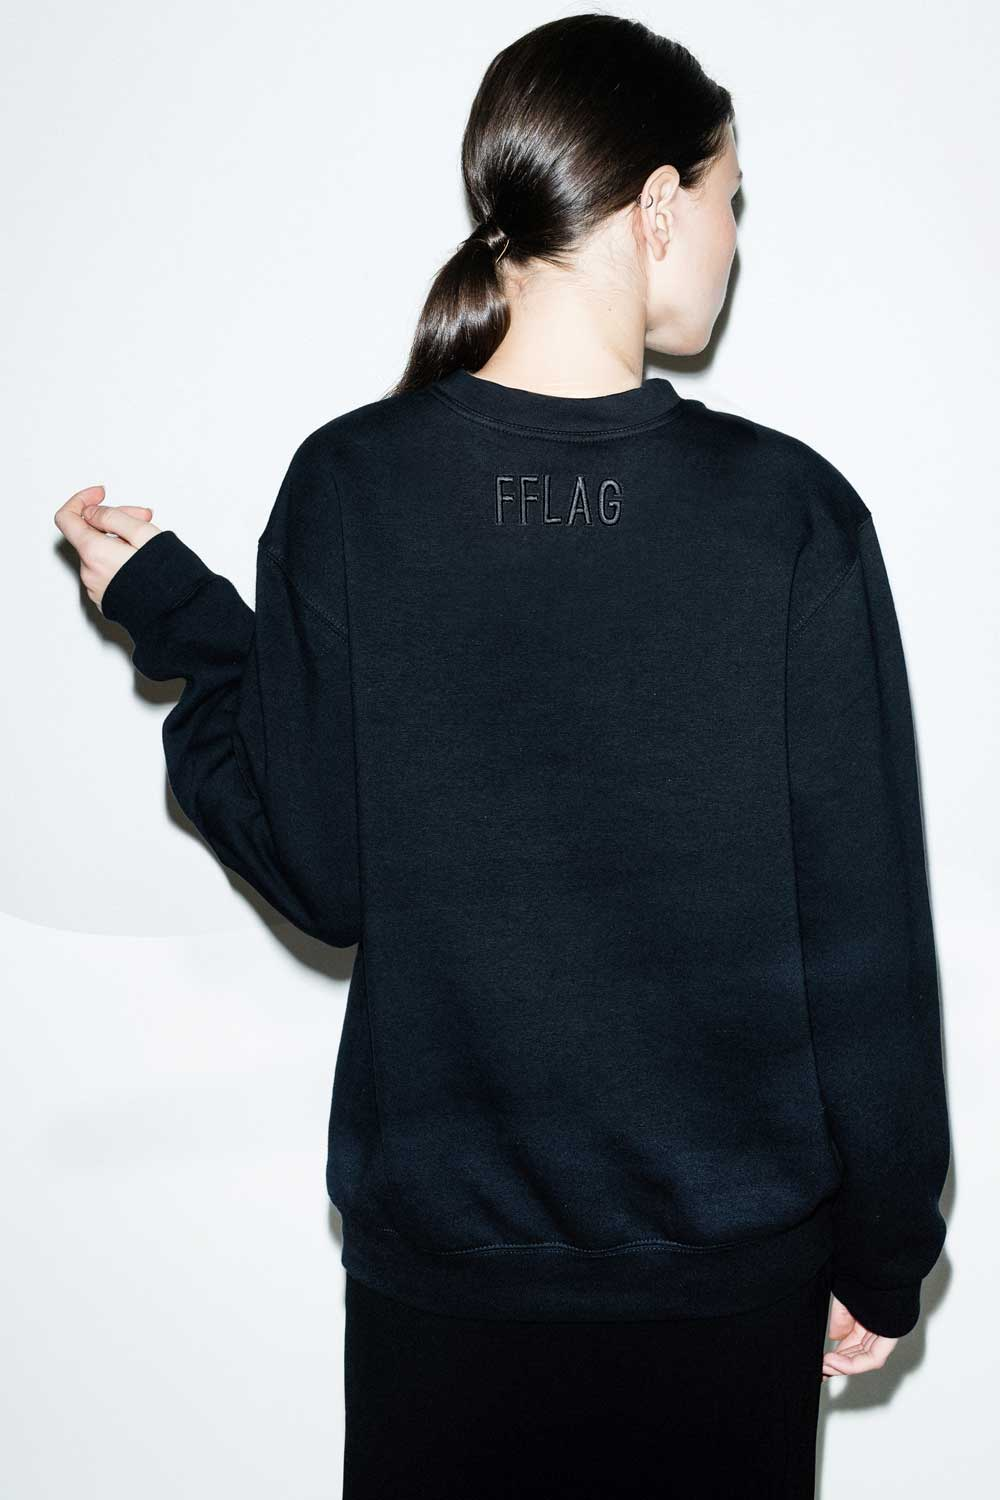 fflag-sweatshirt-ornement-miroir-broderie-couture-5